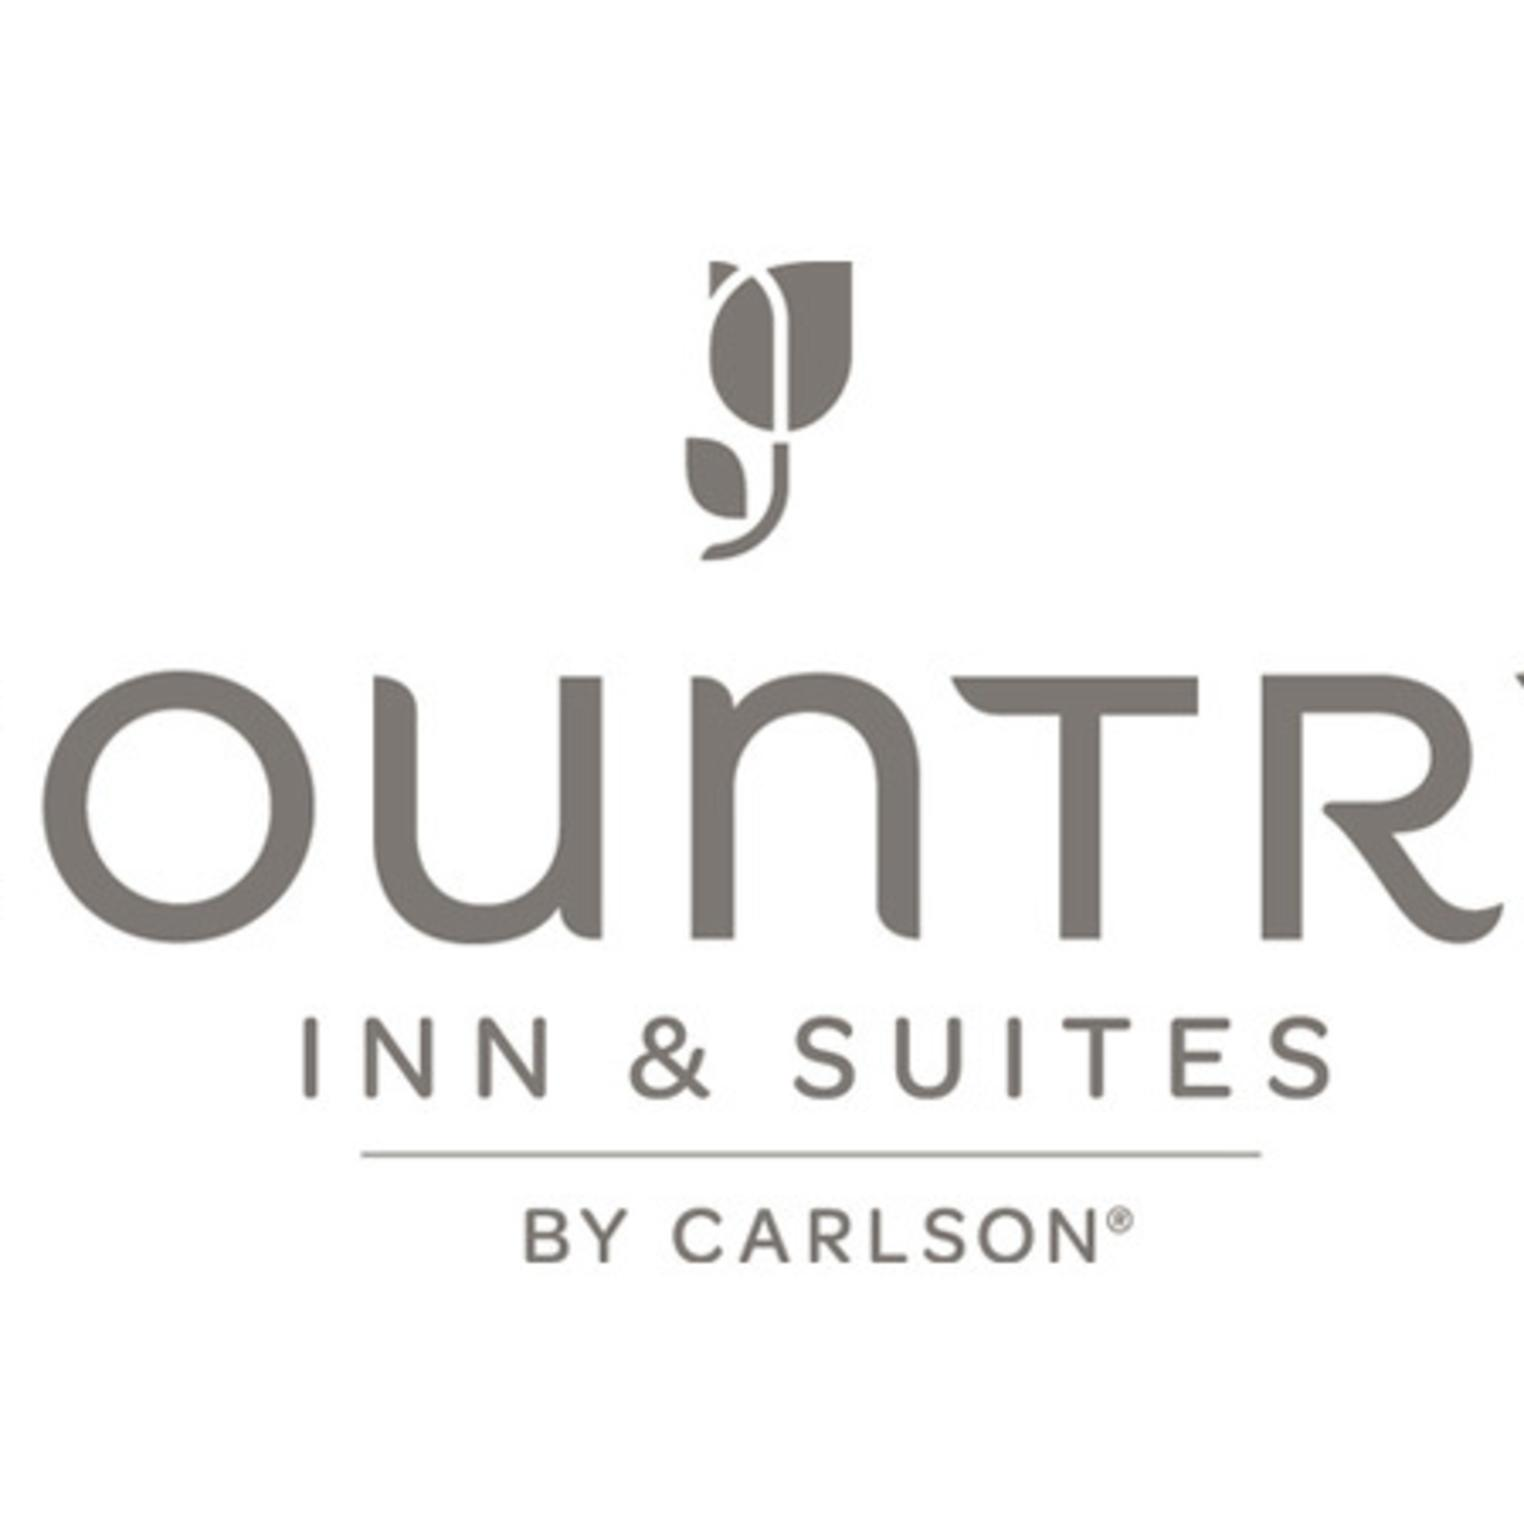 Country Inn and Suites 2013 Logo